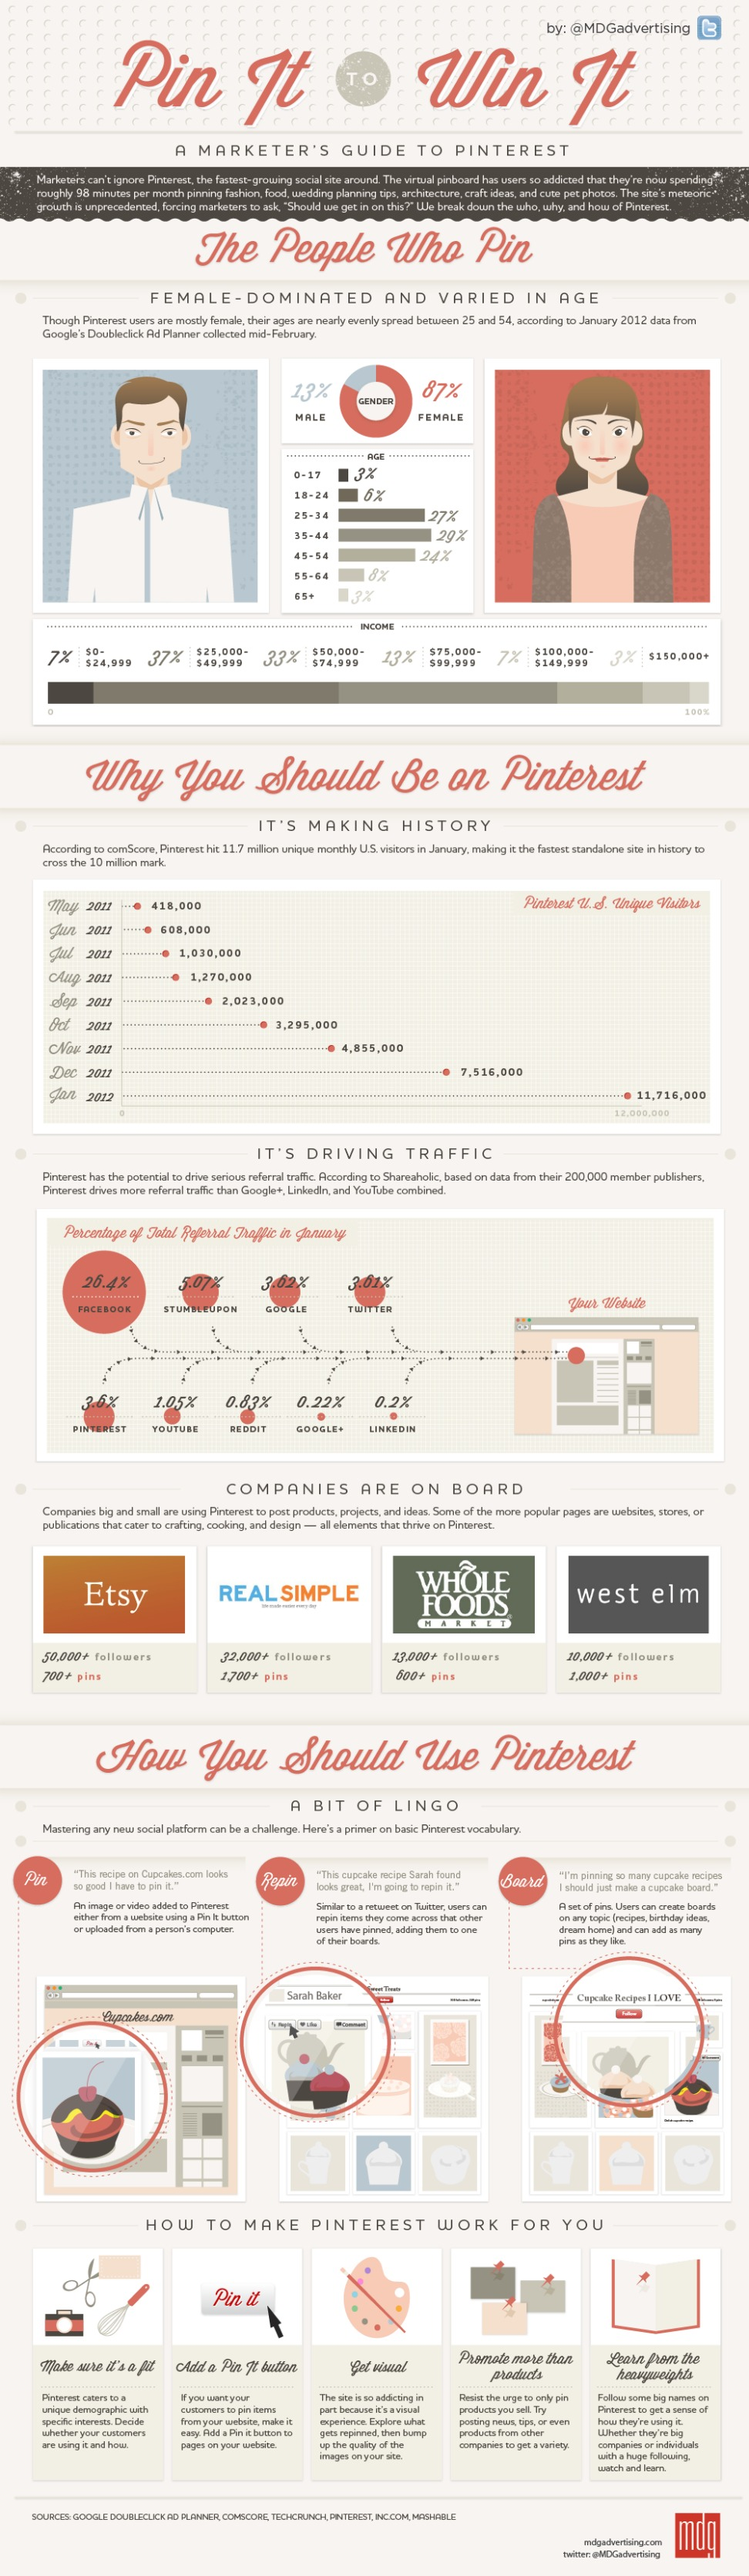 infographic on marketing for pinterest